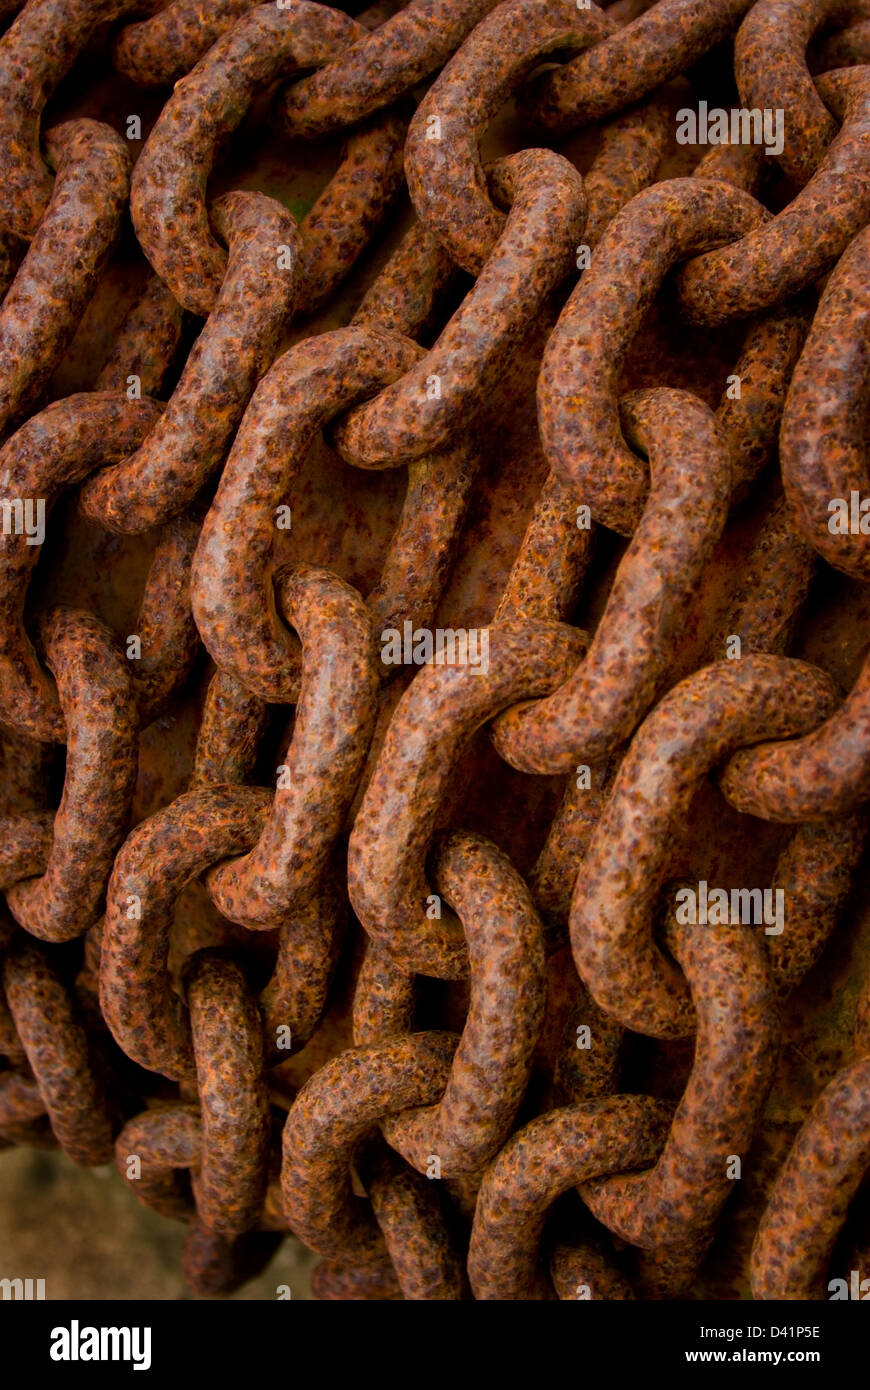 Old rusty / rusted chain, strong, strength or reliable concept. - Stock Image